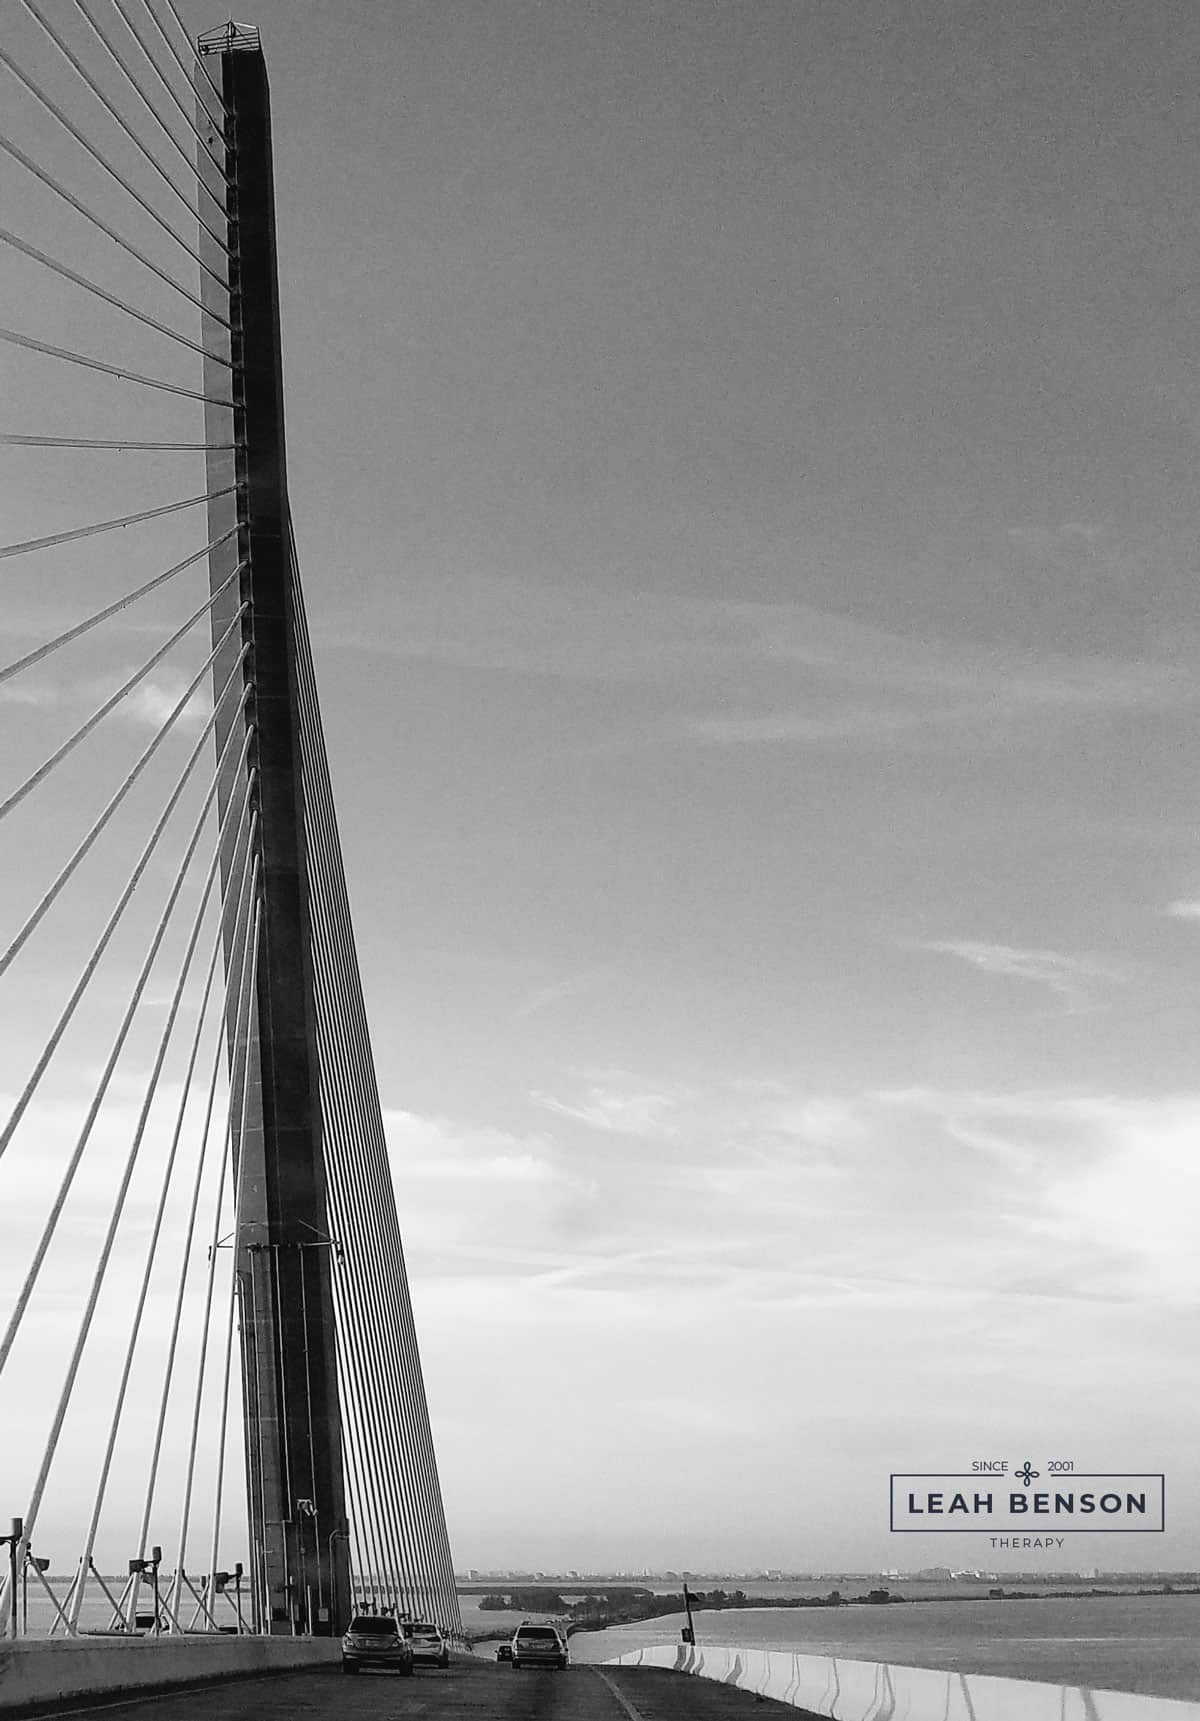 Photo of Sunshine Skyway bridge with Leah Benson Therapy logo